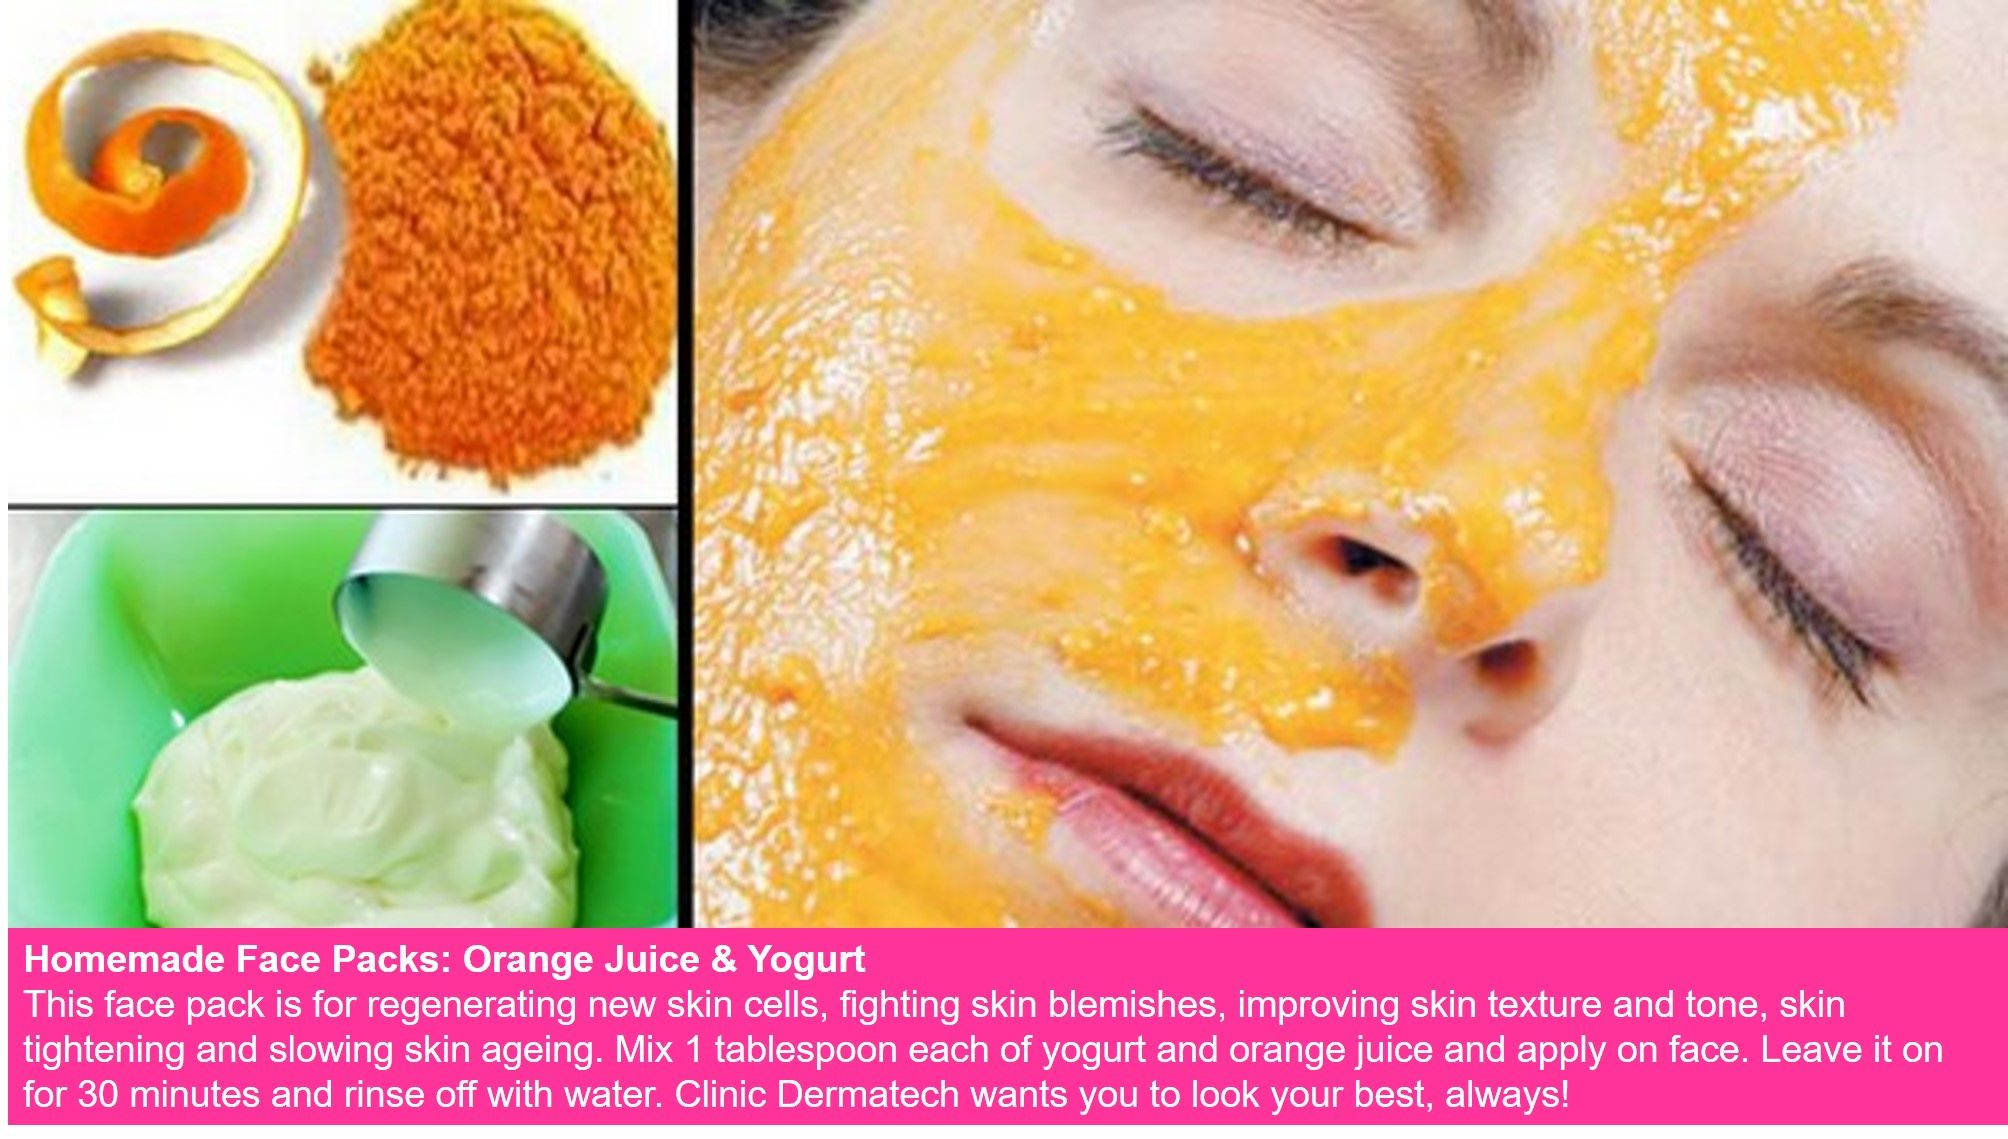 How to make orange face packs, face masks for your beauty care at home How to make orange face packs, face masks for your beauty care at home new foto